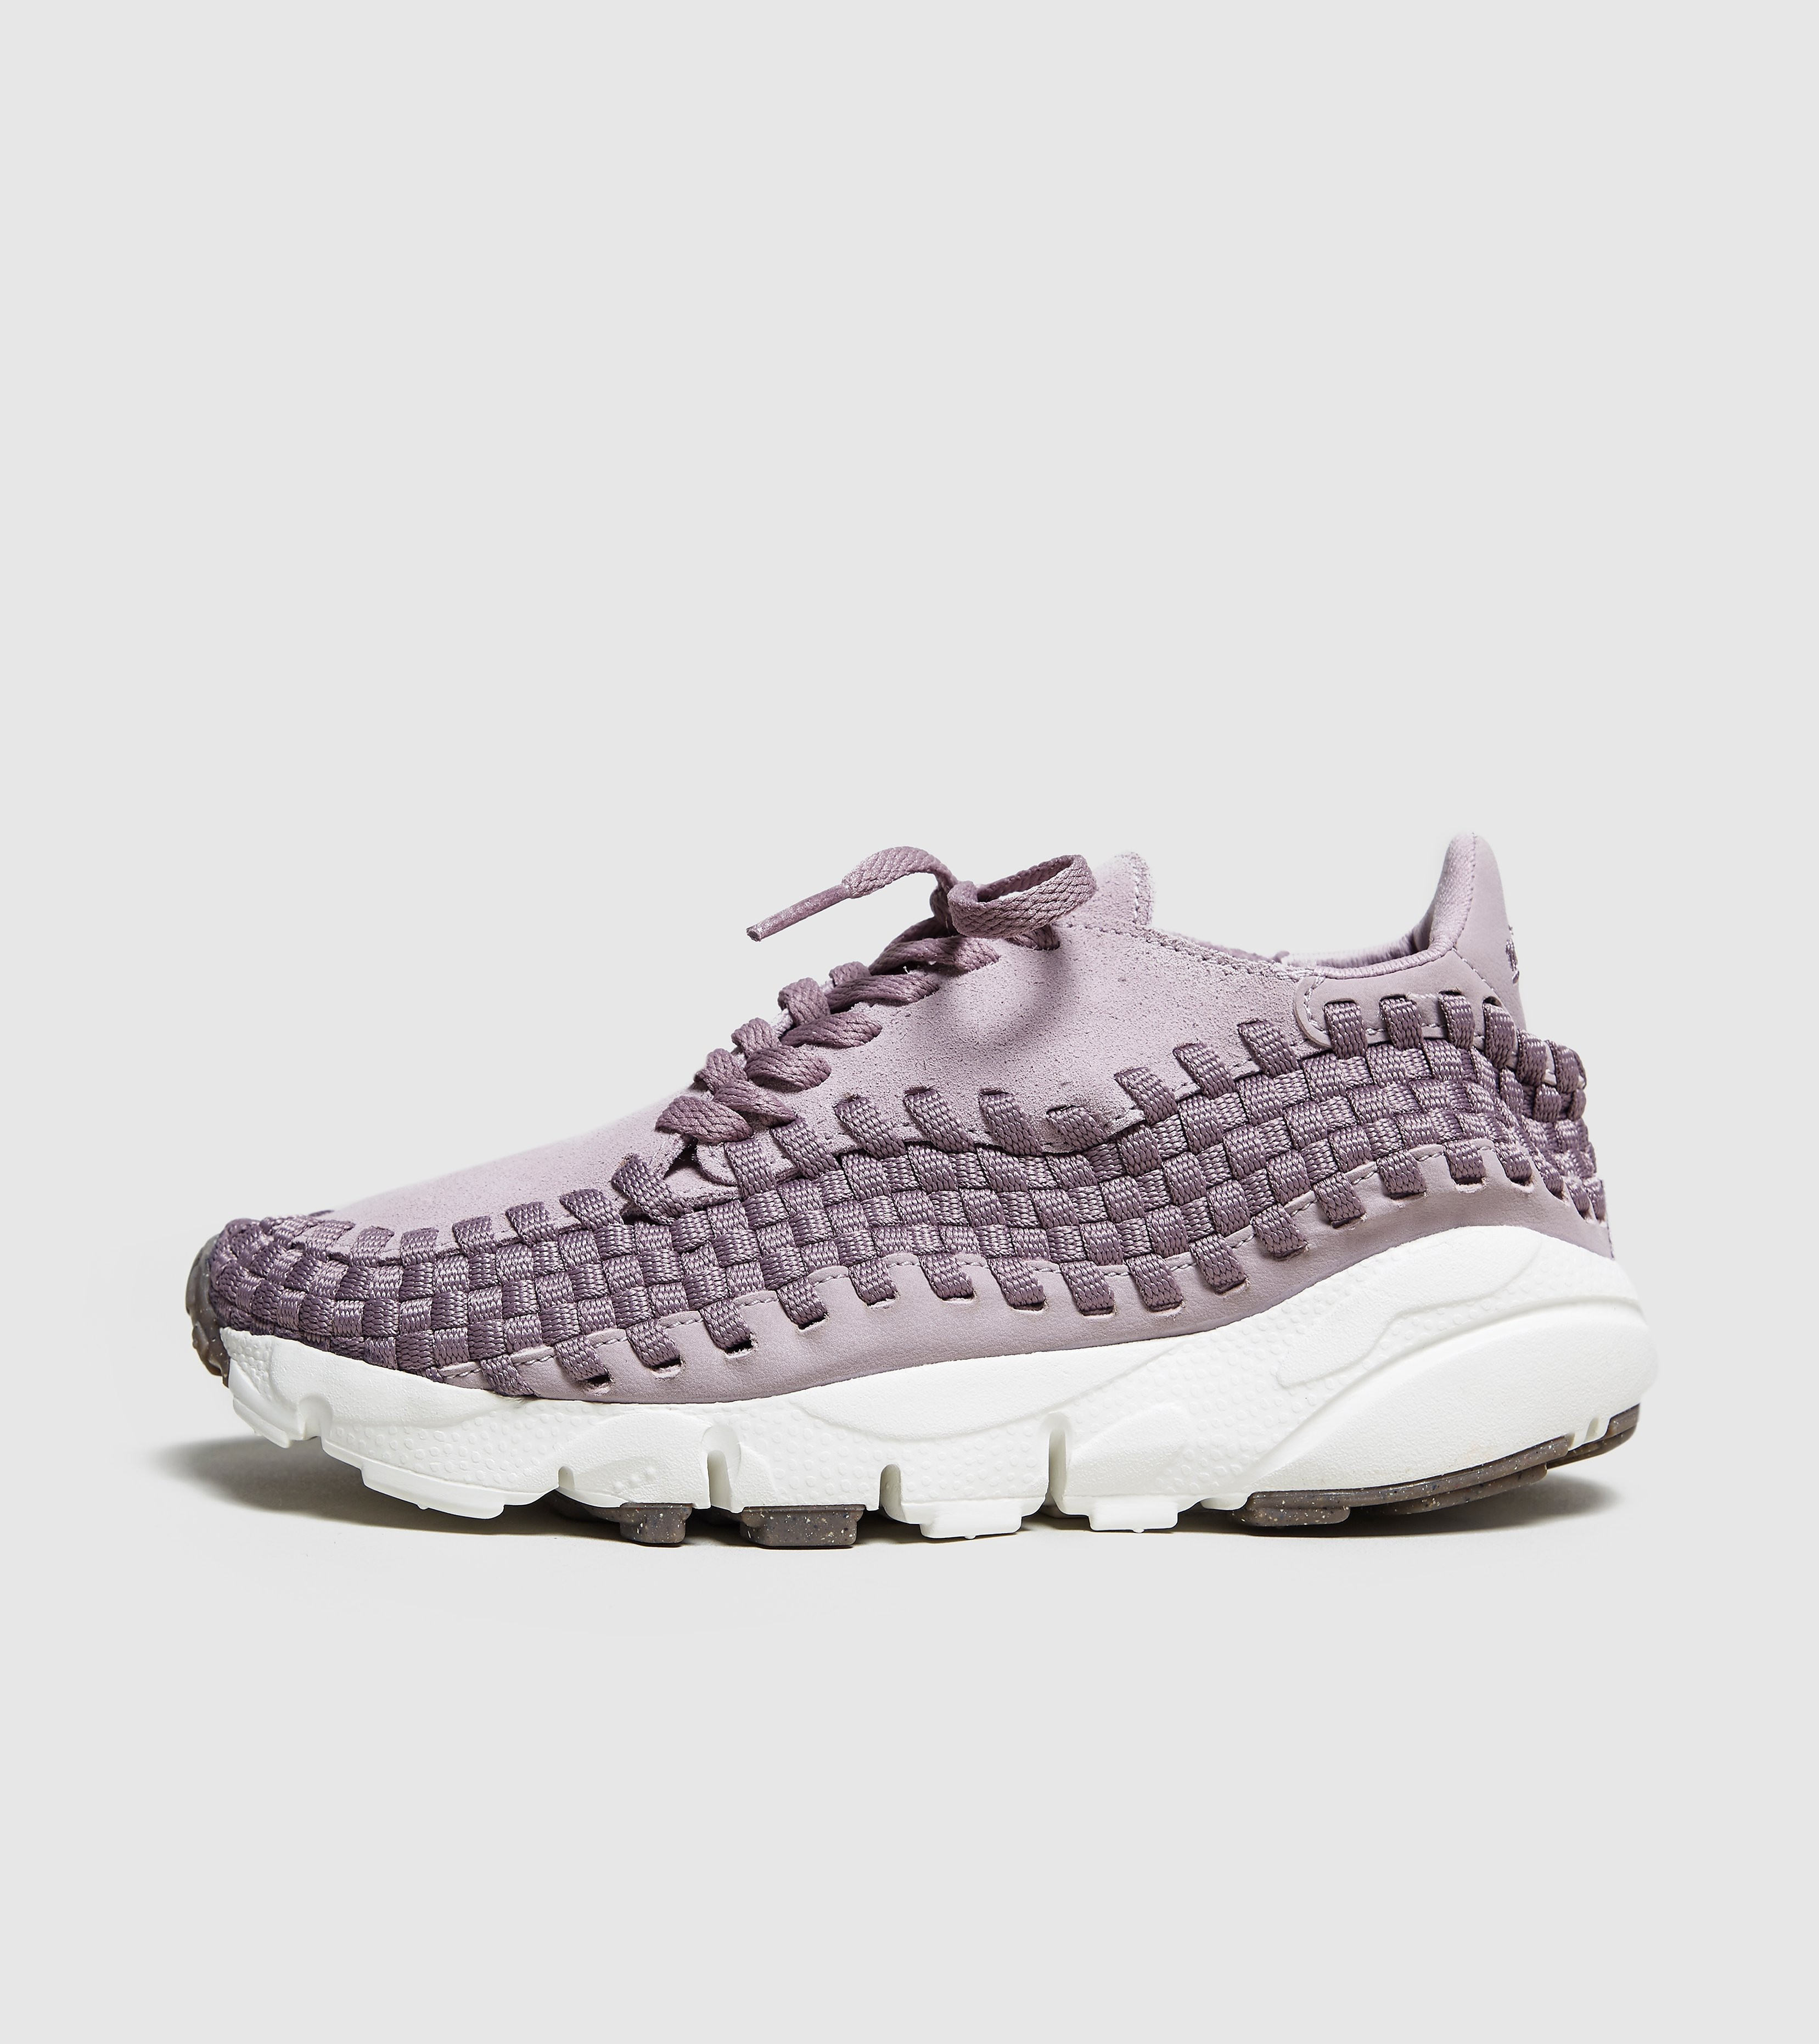 Nike Footscape Woven donna